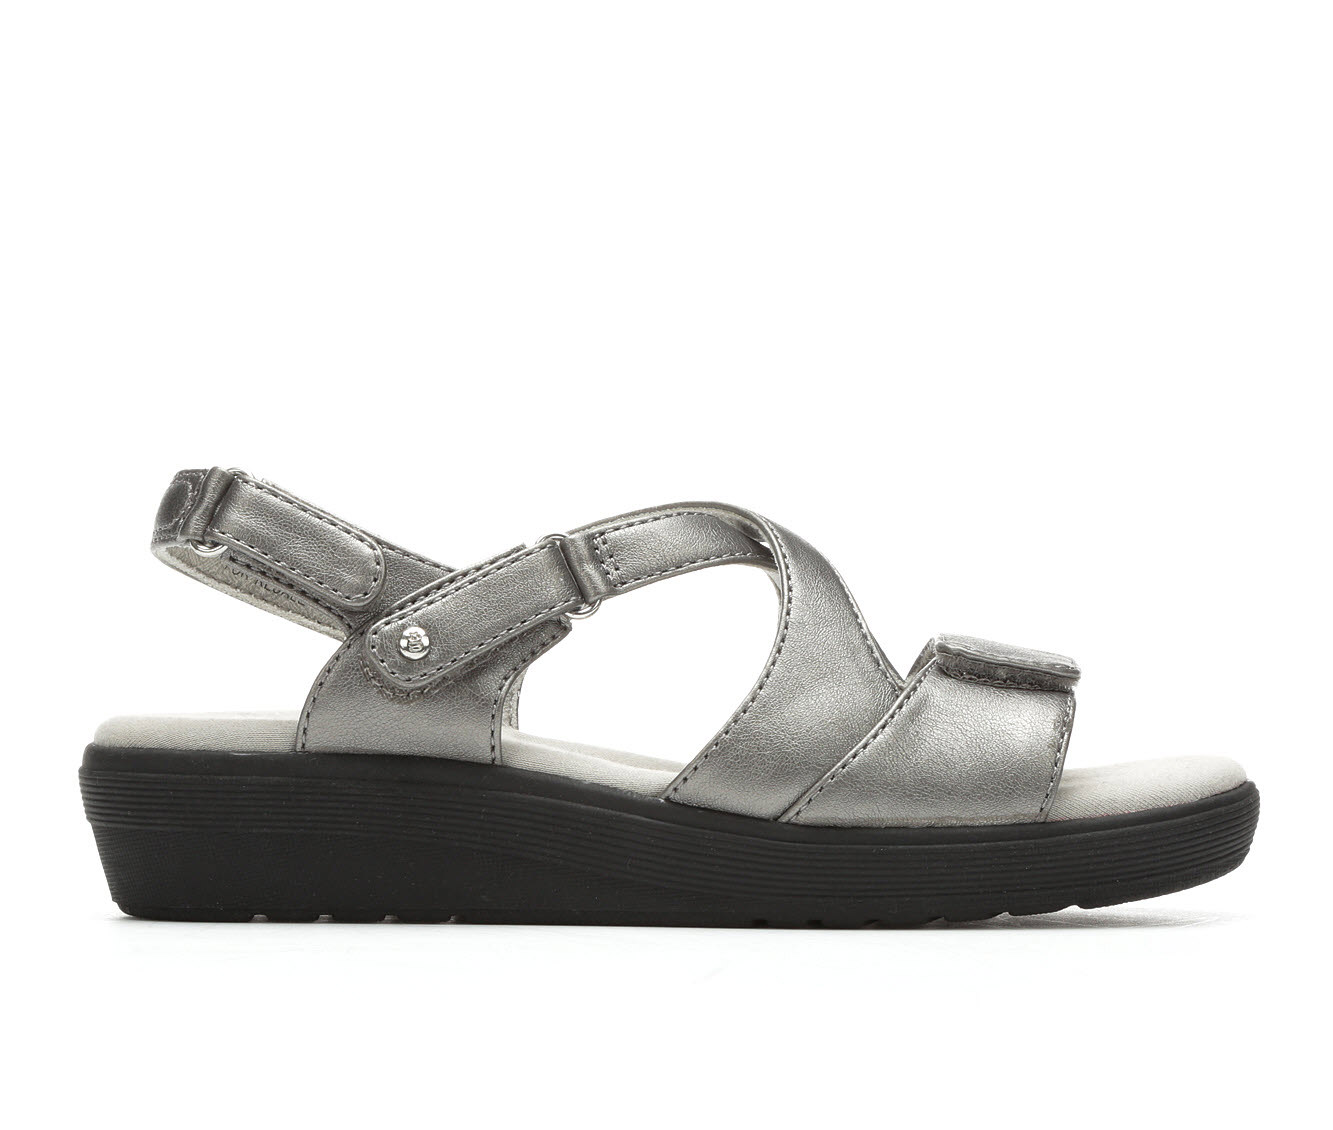 Women's Grasshoppers Cherry Wedge Sandals (Silver)